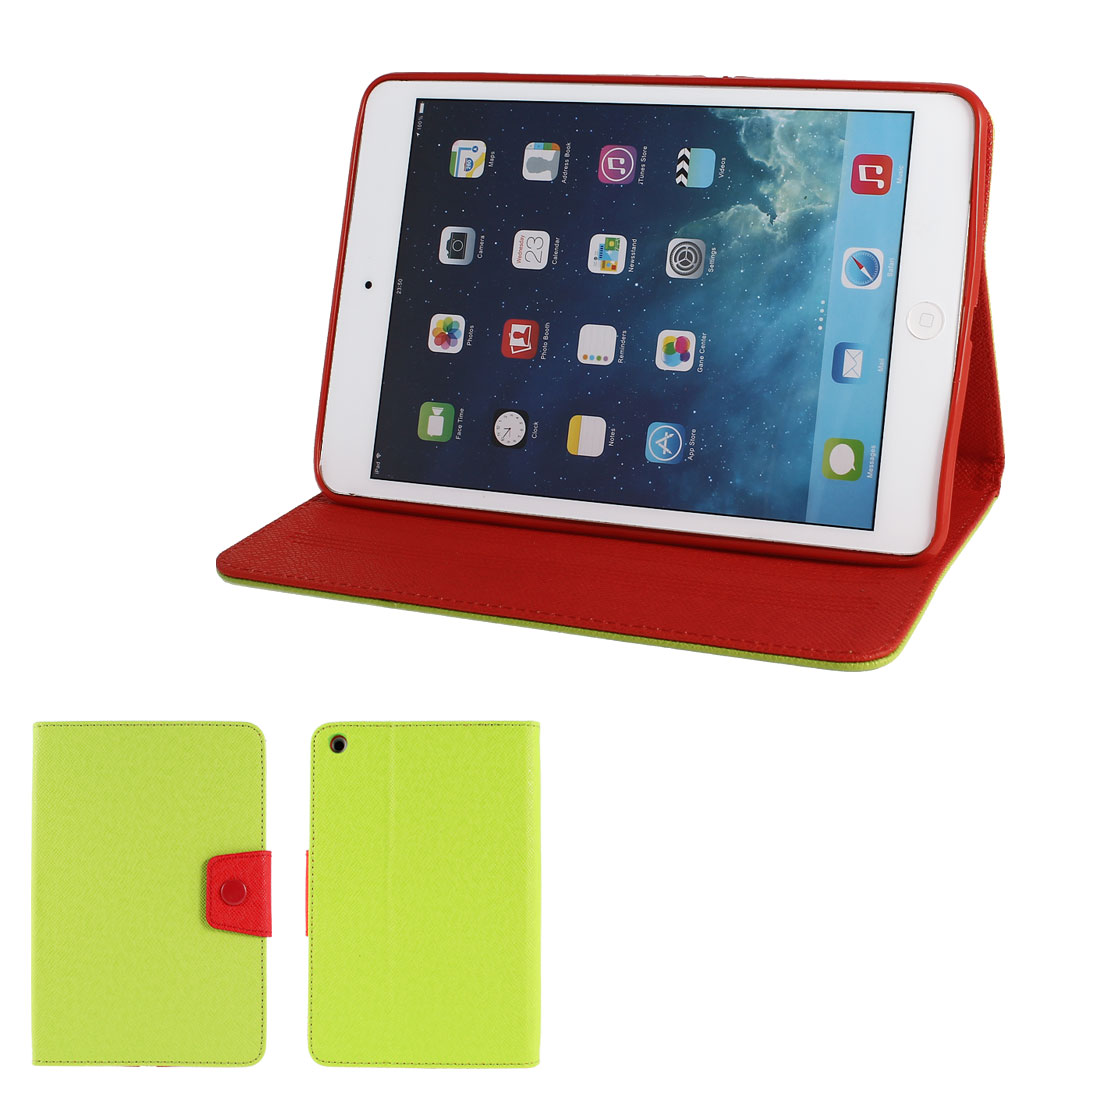 Green PU Leather Red Silicone Holder Folio Flip Stand Case Cover for iPad Mini